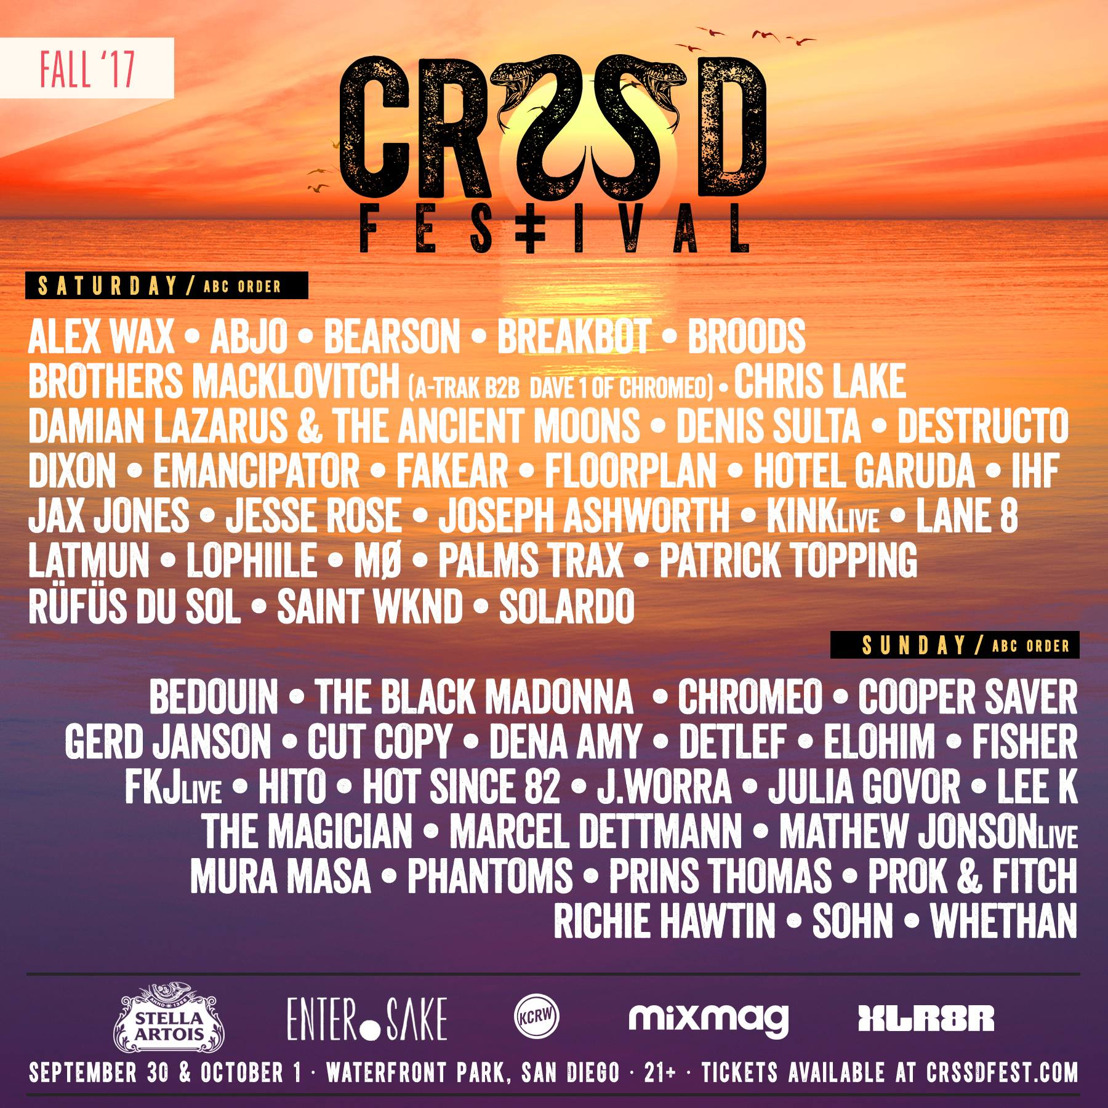 CRSSD Festival Announces 2017 Fall Lineup